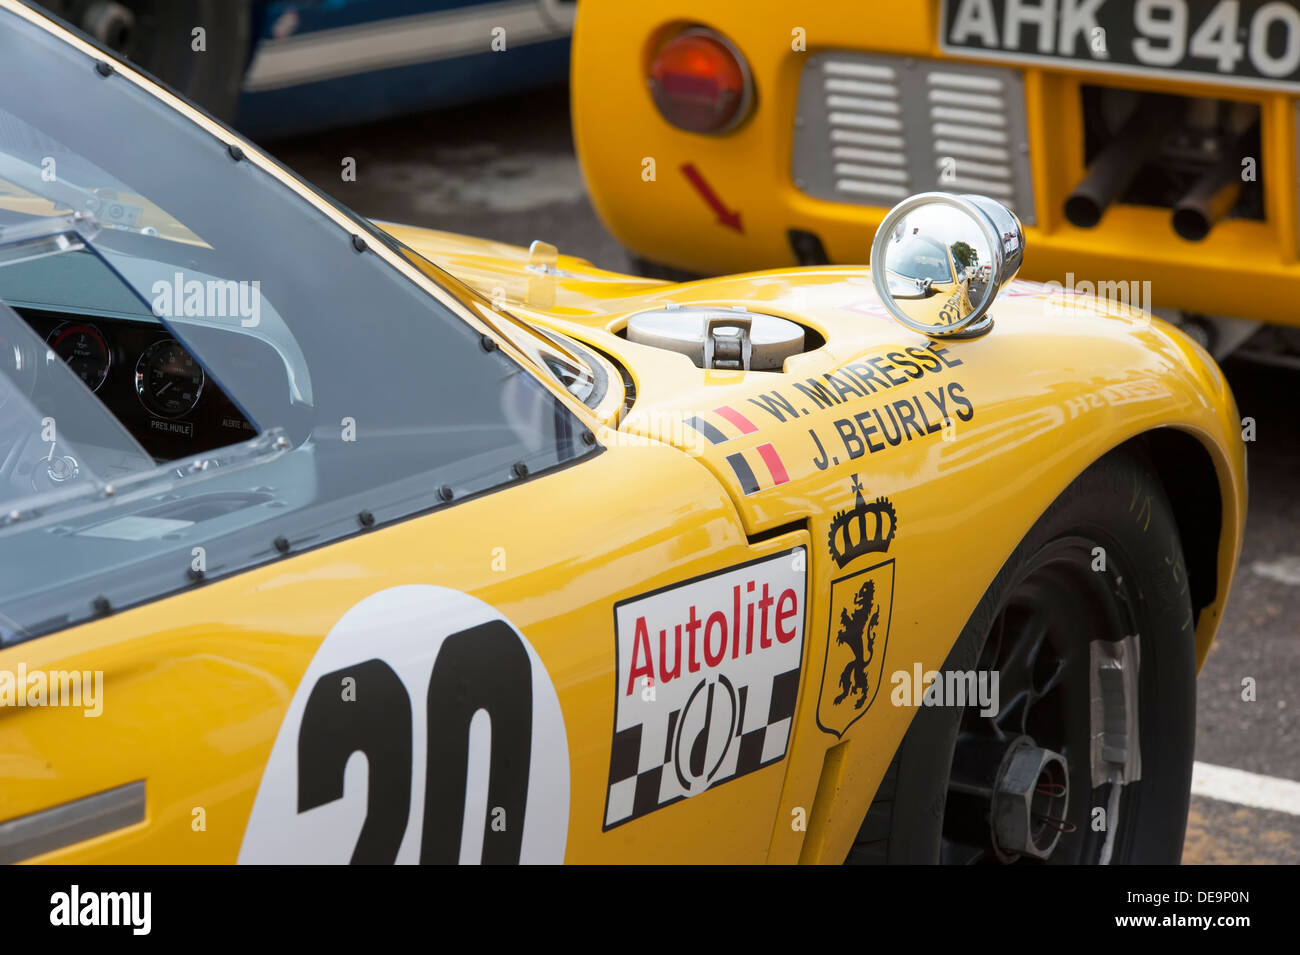 Detail Of Ford Gt  Le Mans Car Showing R H Front With Fuel Cap